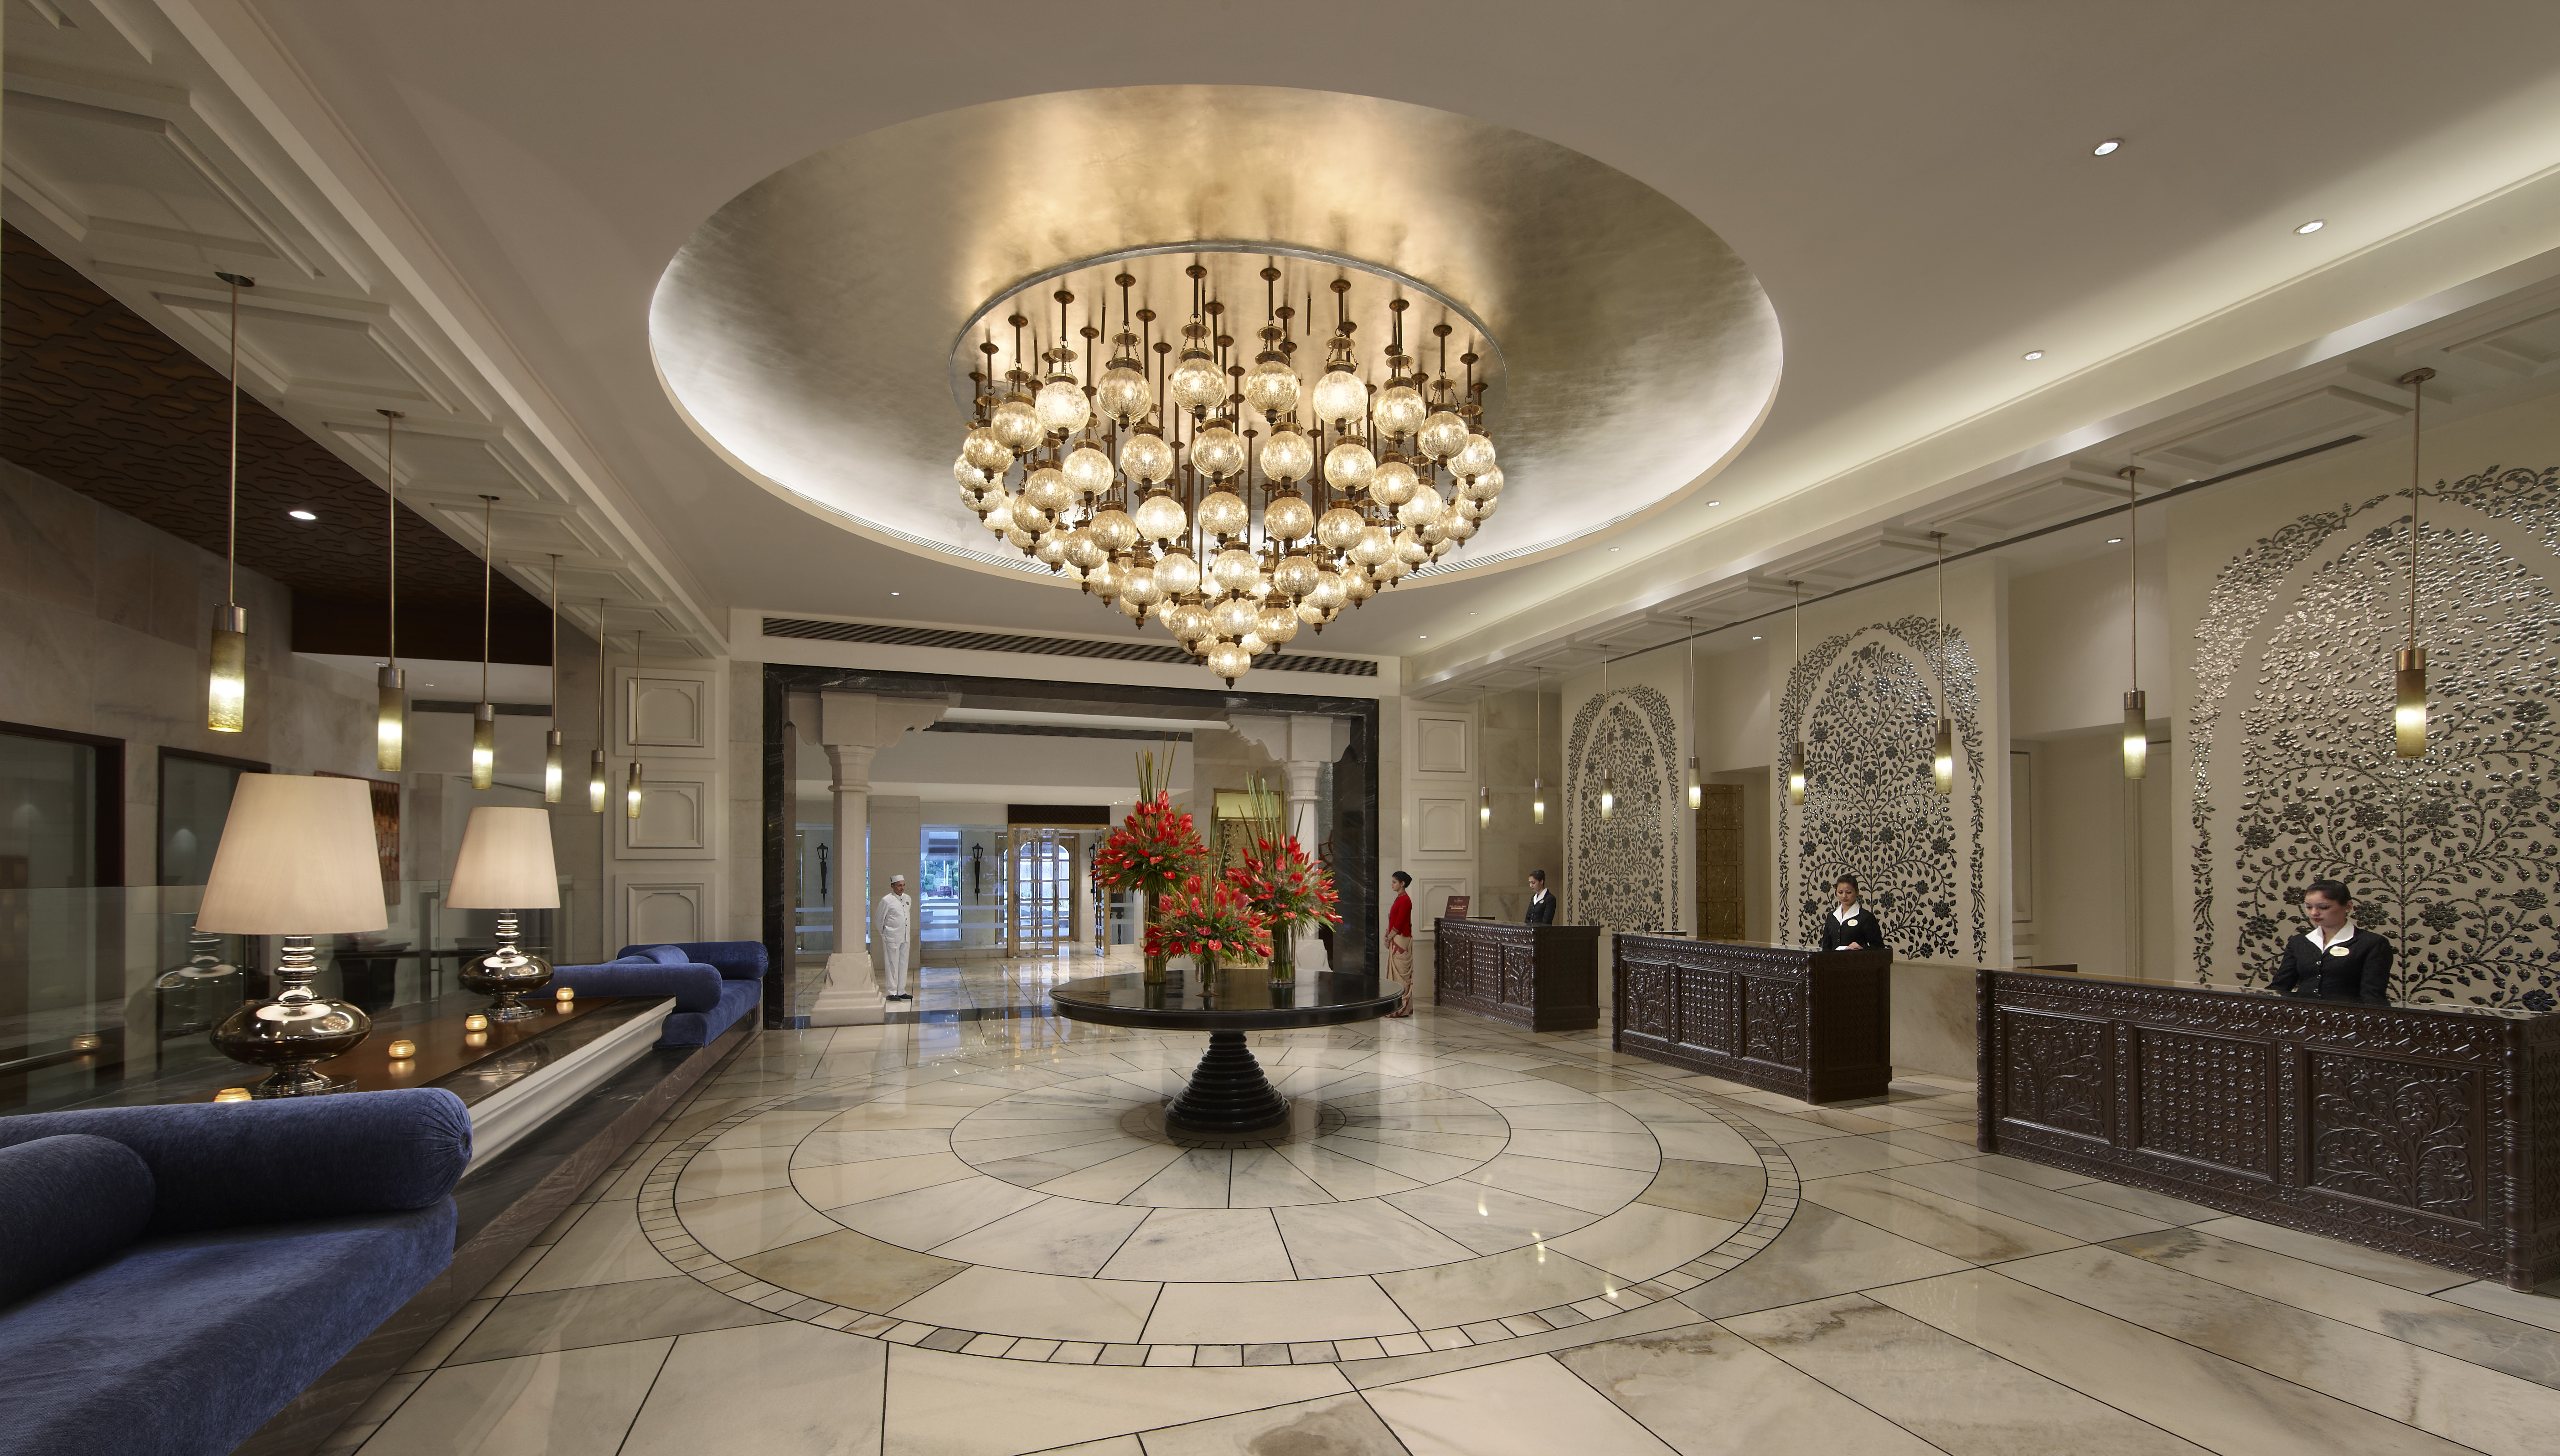 Itc mughal for Luxury hotel collection